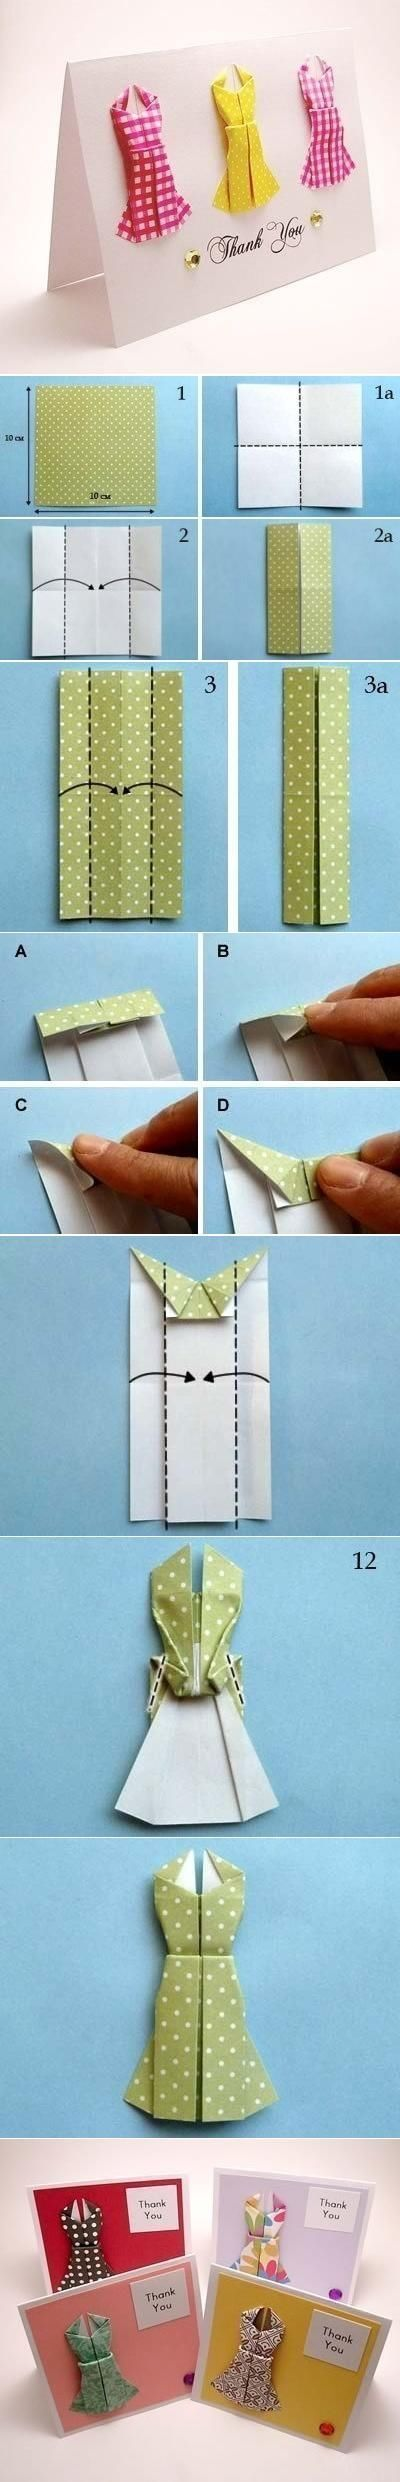 How to make a cute dress thank you card